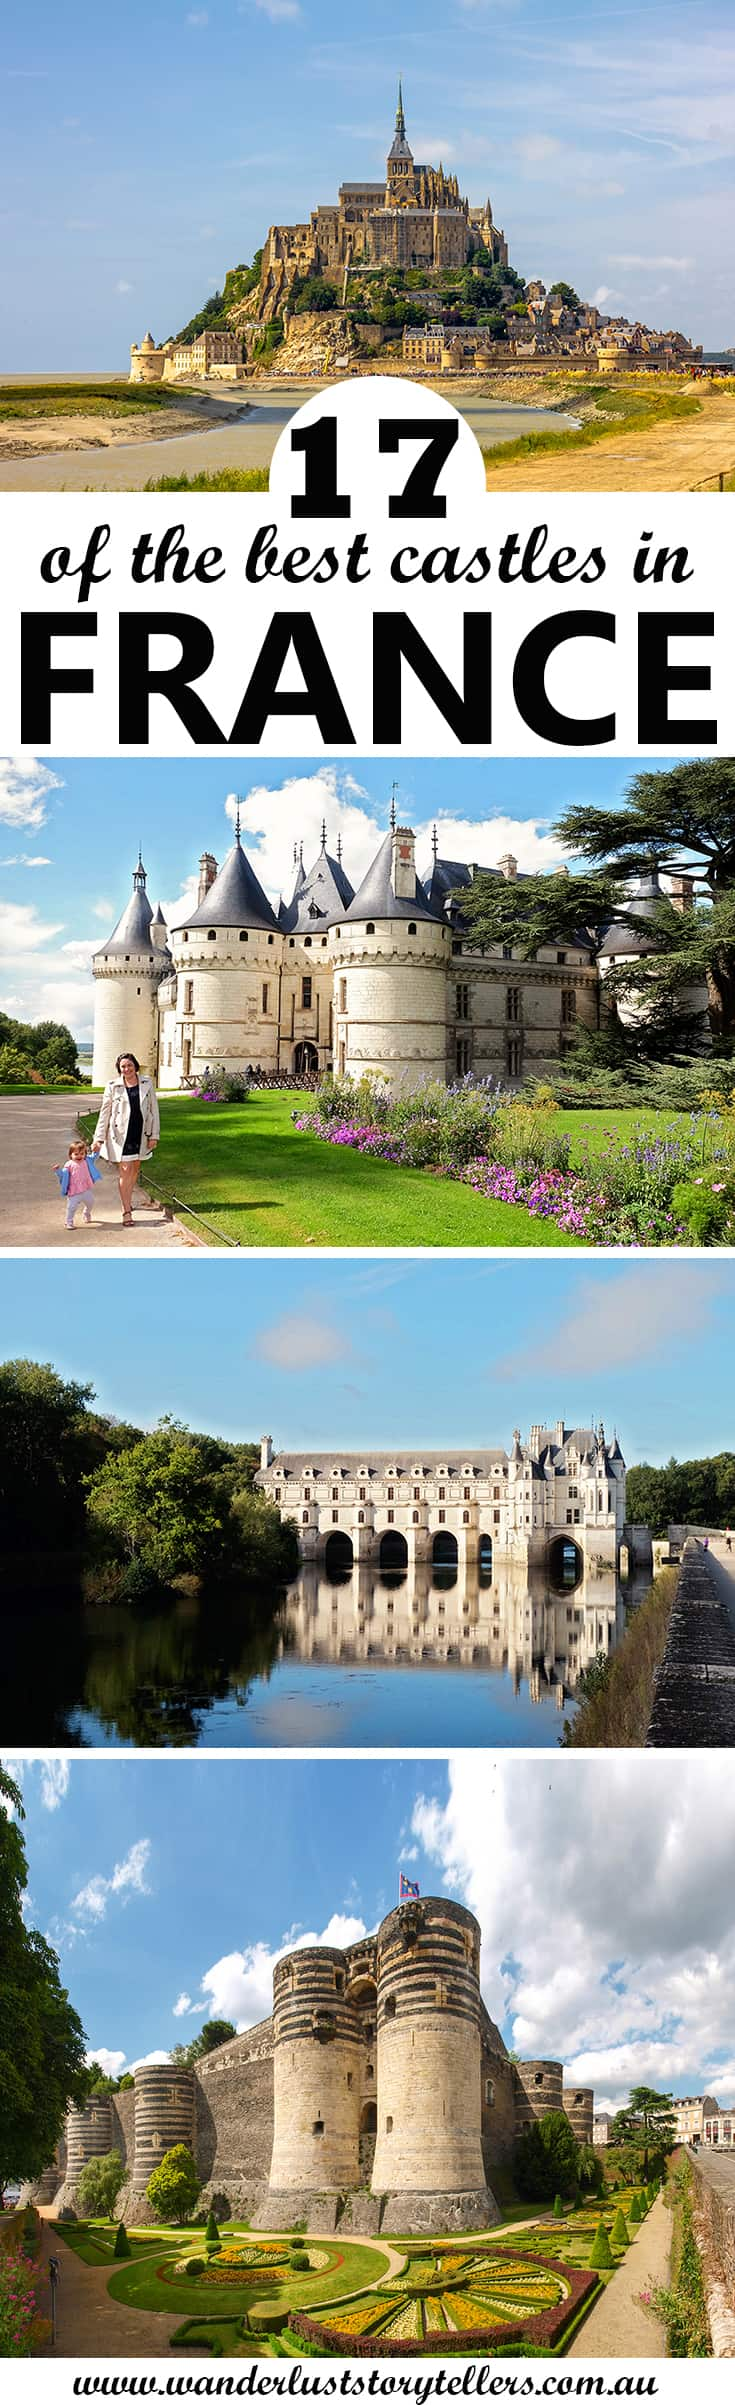 17 of the Best Castles in France to Visit